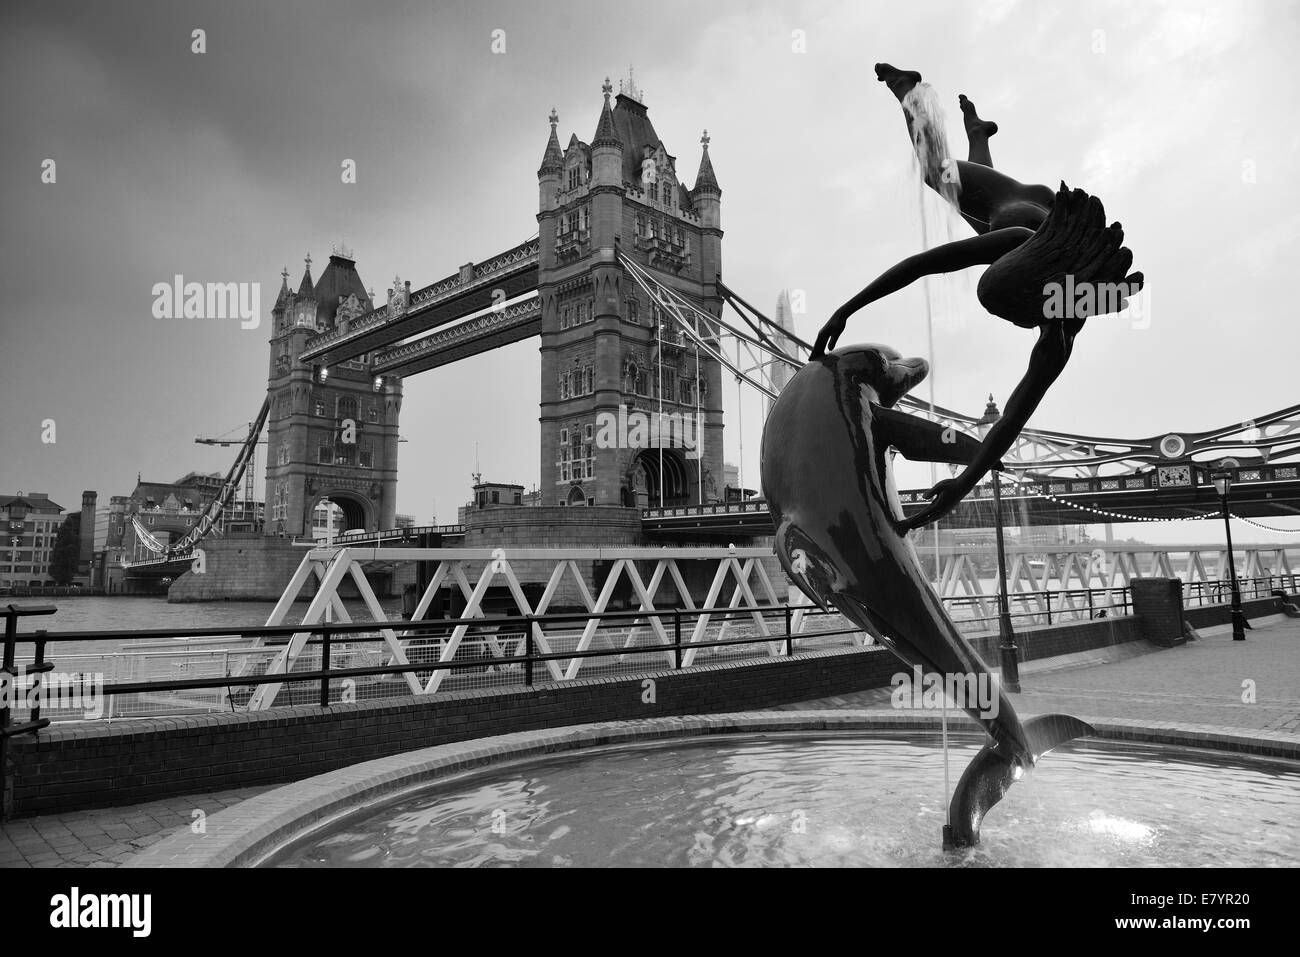 Tower Bridge and statue of a girl playing with dolphin in St Katharine docks in London. - Stock Image